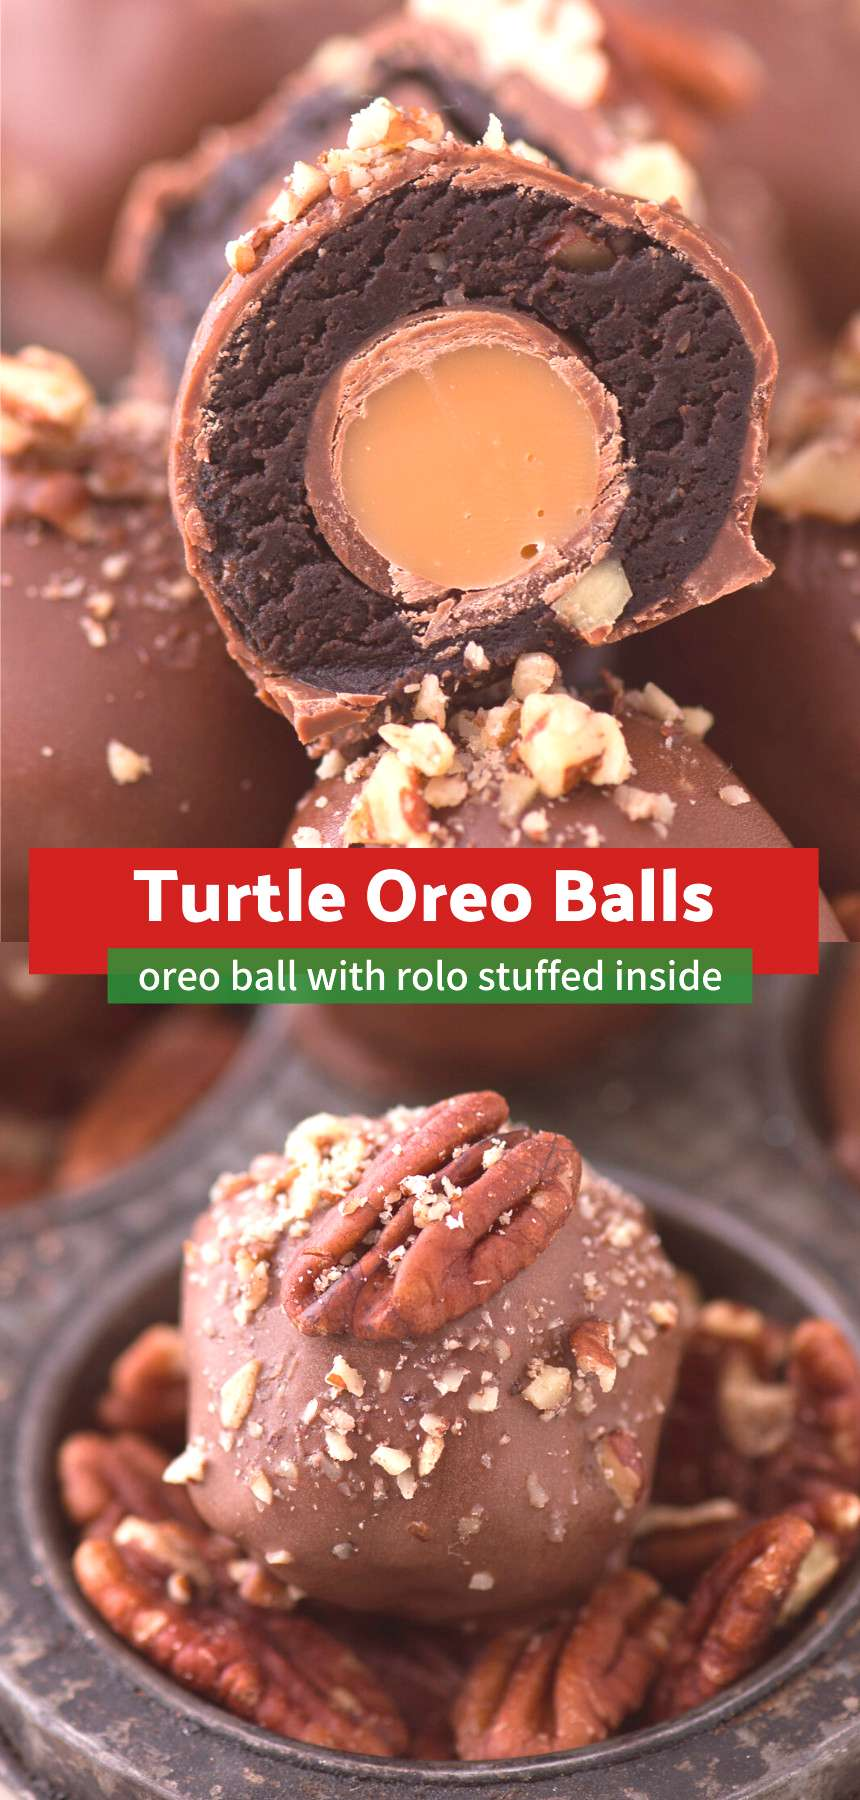 Turtle Oreo Balls The ultimate turtle oreo balls with chocolate, caramel and nuts! Each oreo ball i